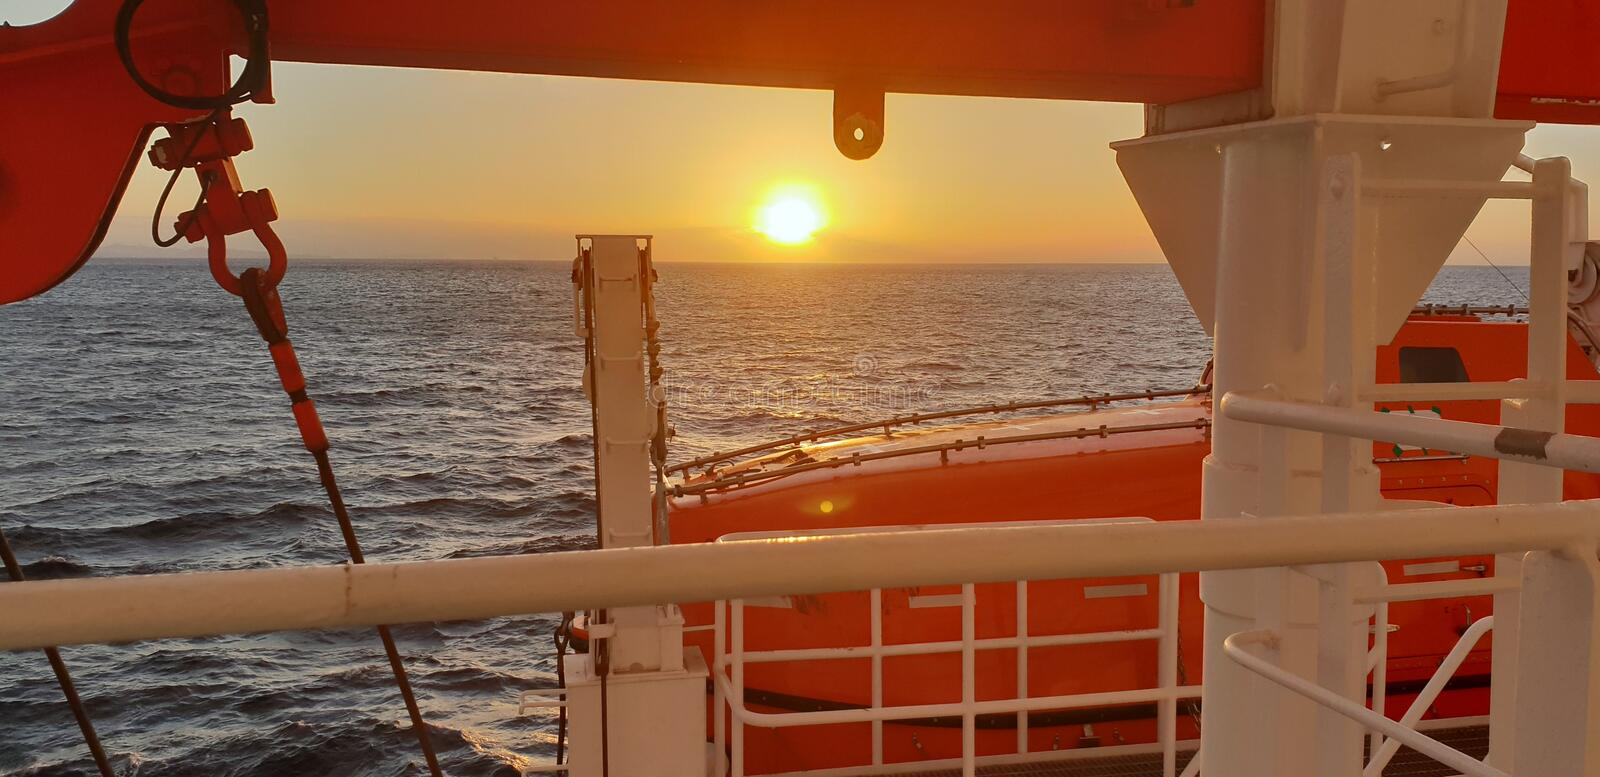 Marine sunrise, be safe. Safety first! royalty free stock images